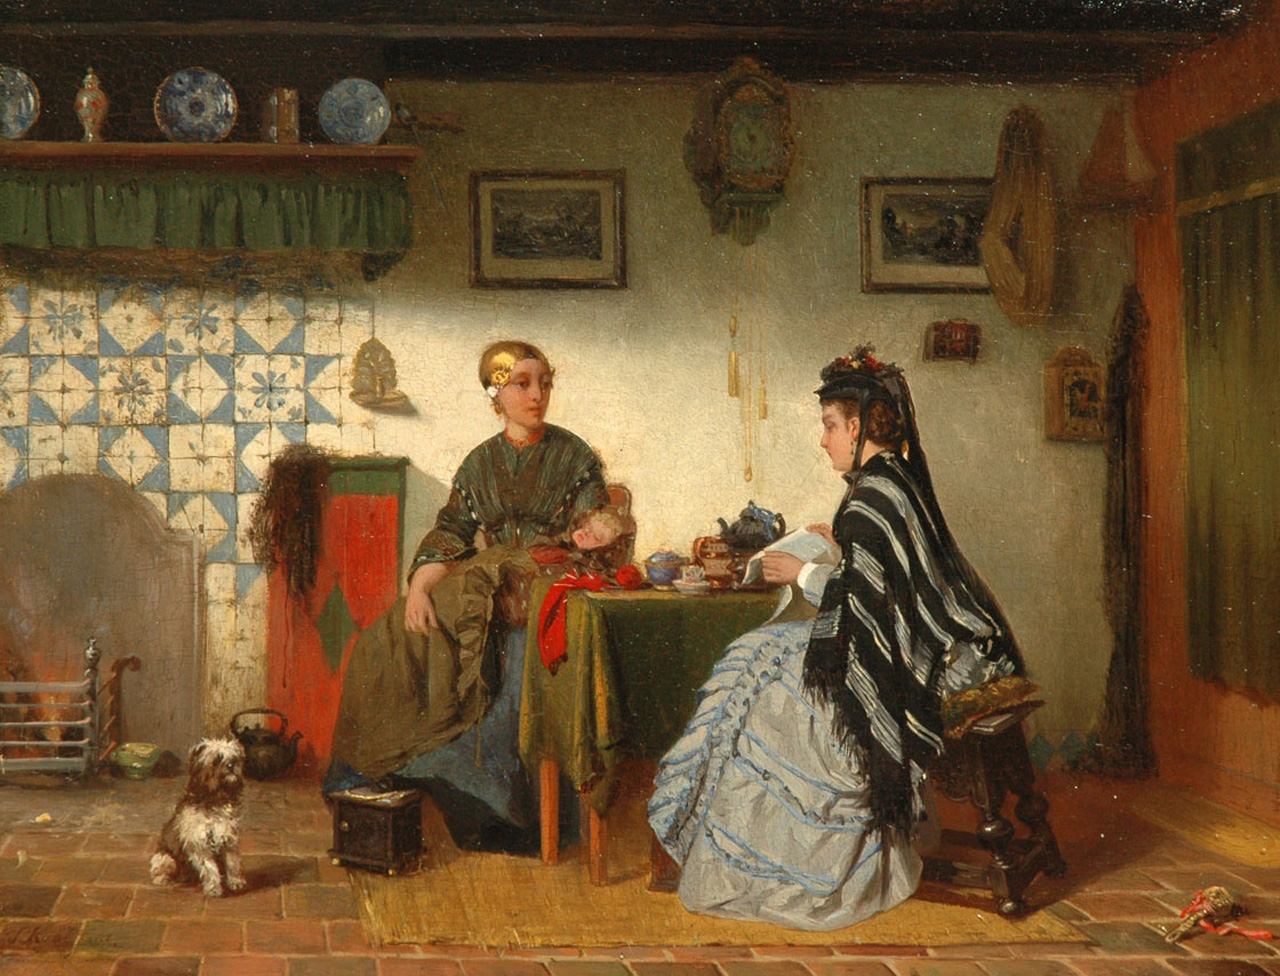 Kool S.C.  | Sipke 'Cornelis' Kool, A Friesland interior, oil on panel 26.6 x 34.9 cm, signed l.l. and dated on the reverse 1875